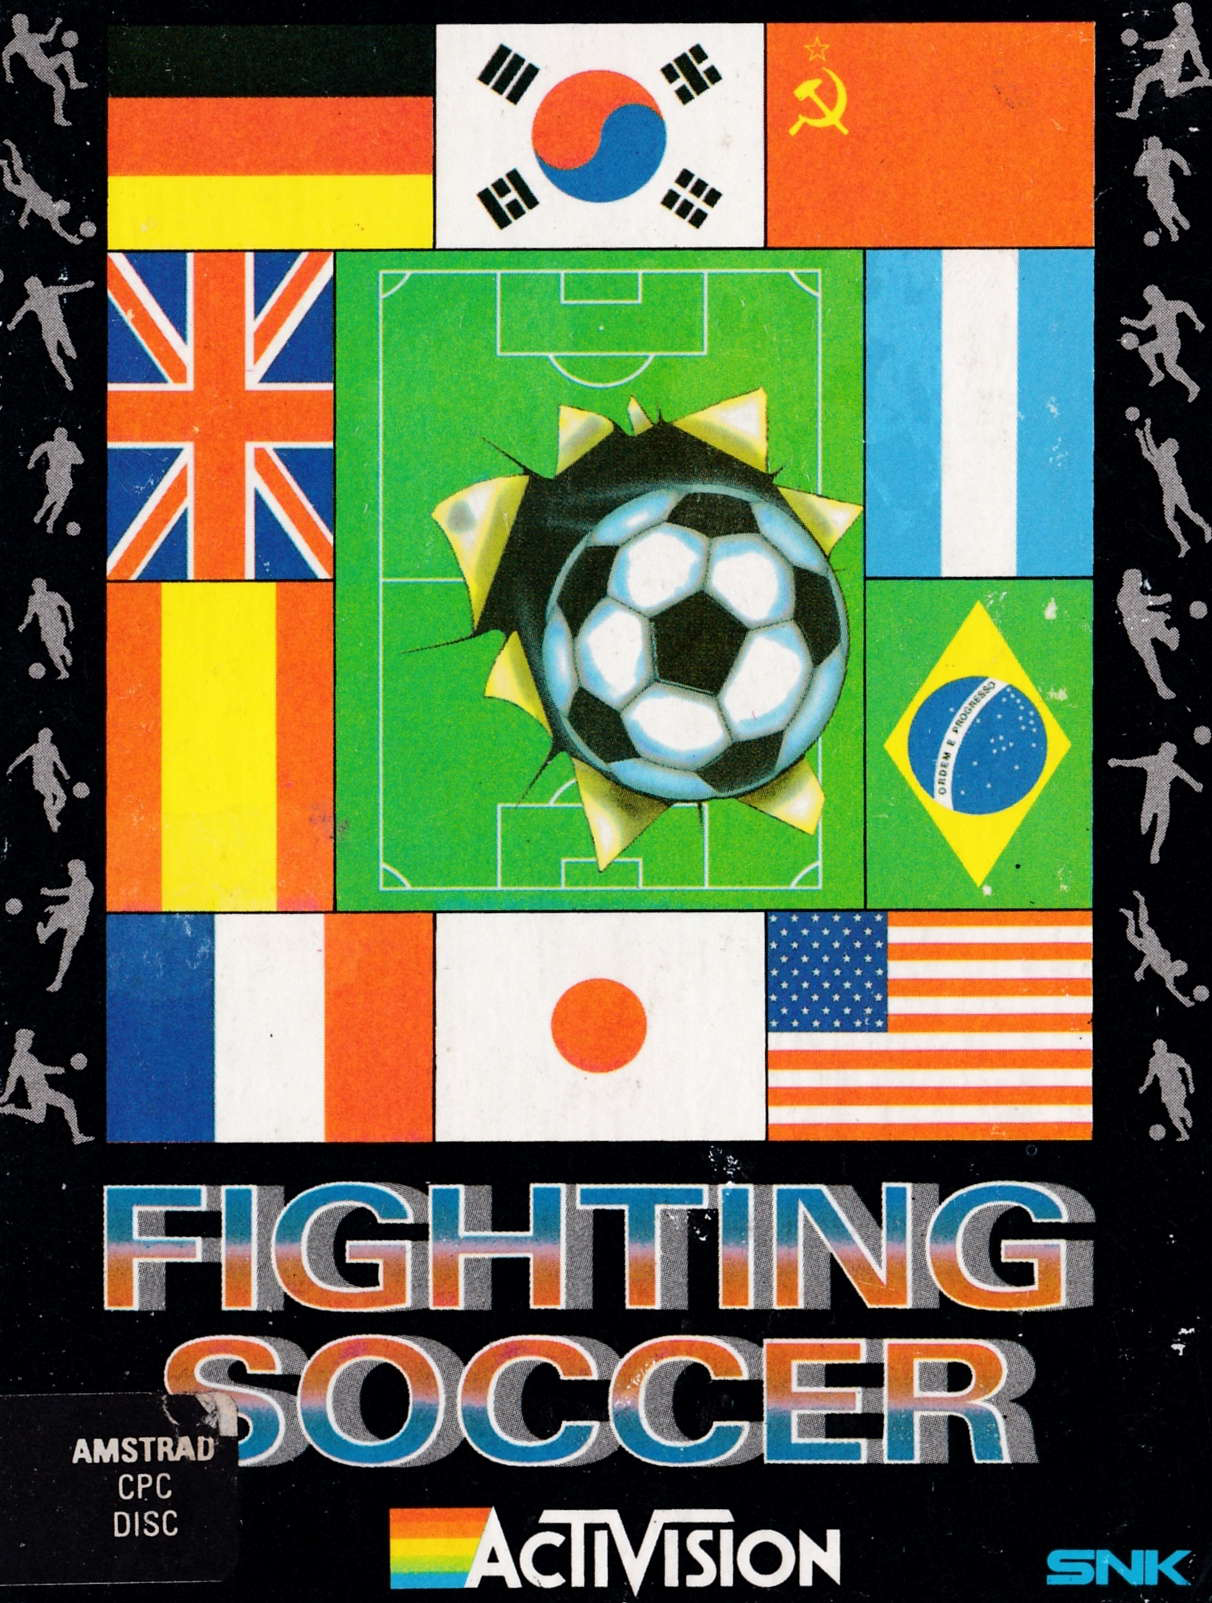 screenshot of the Amstrad CPC game Fighting soccer by GameBase CPC